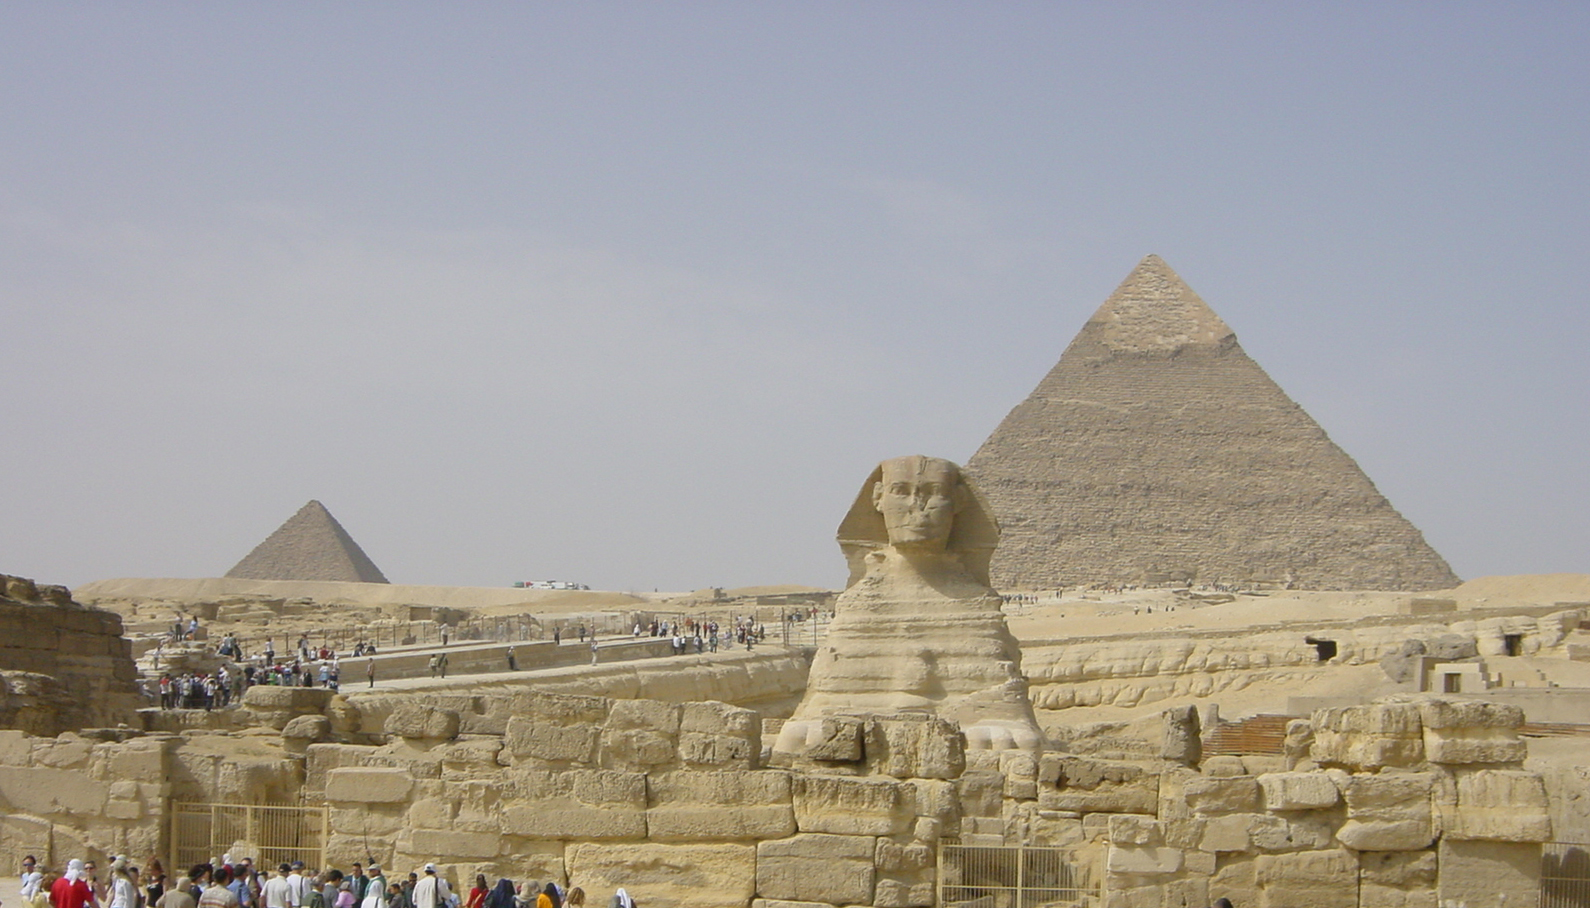 Sphinx at the bottom of the Pyramids